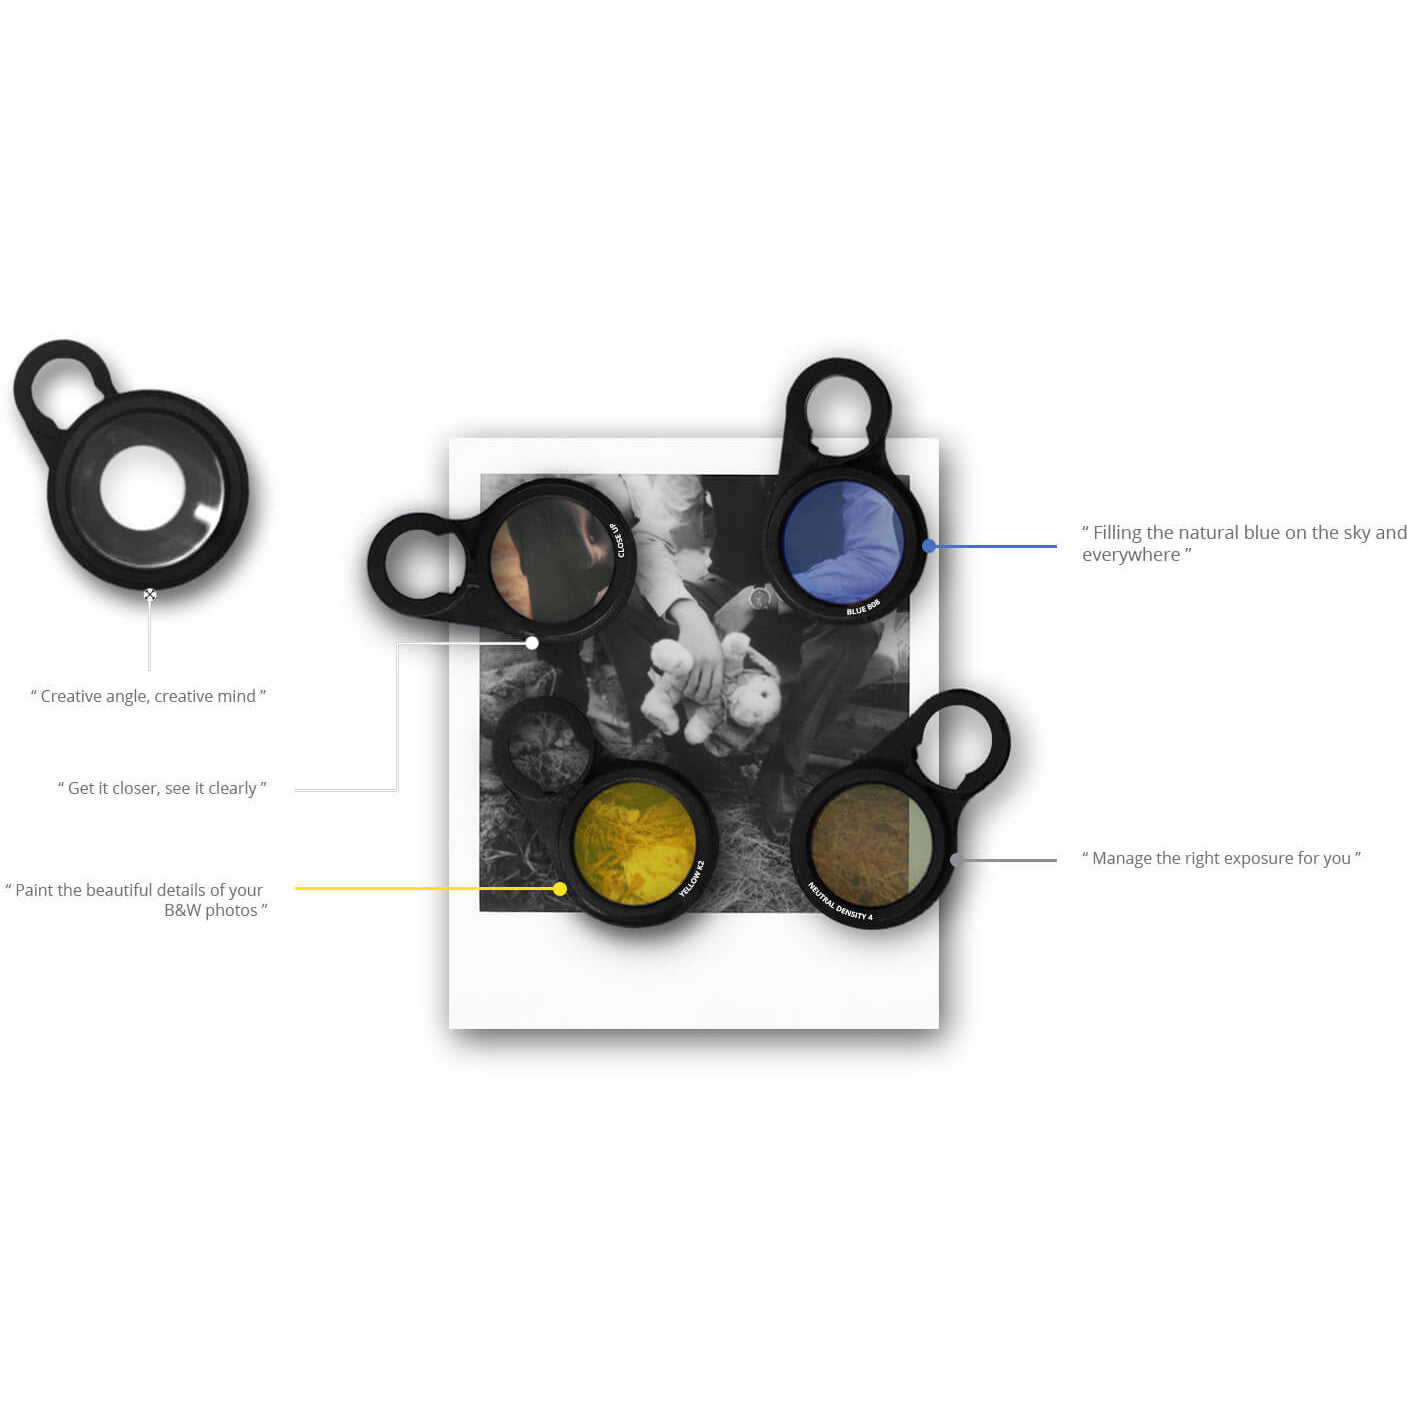 MiNT Lens Set FOR SX-70 Cameras